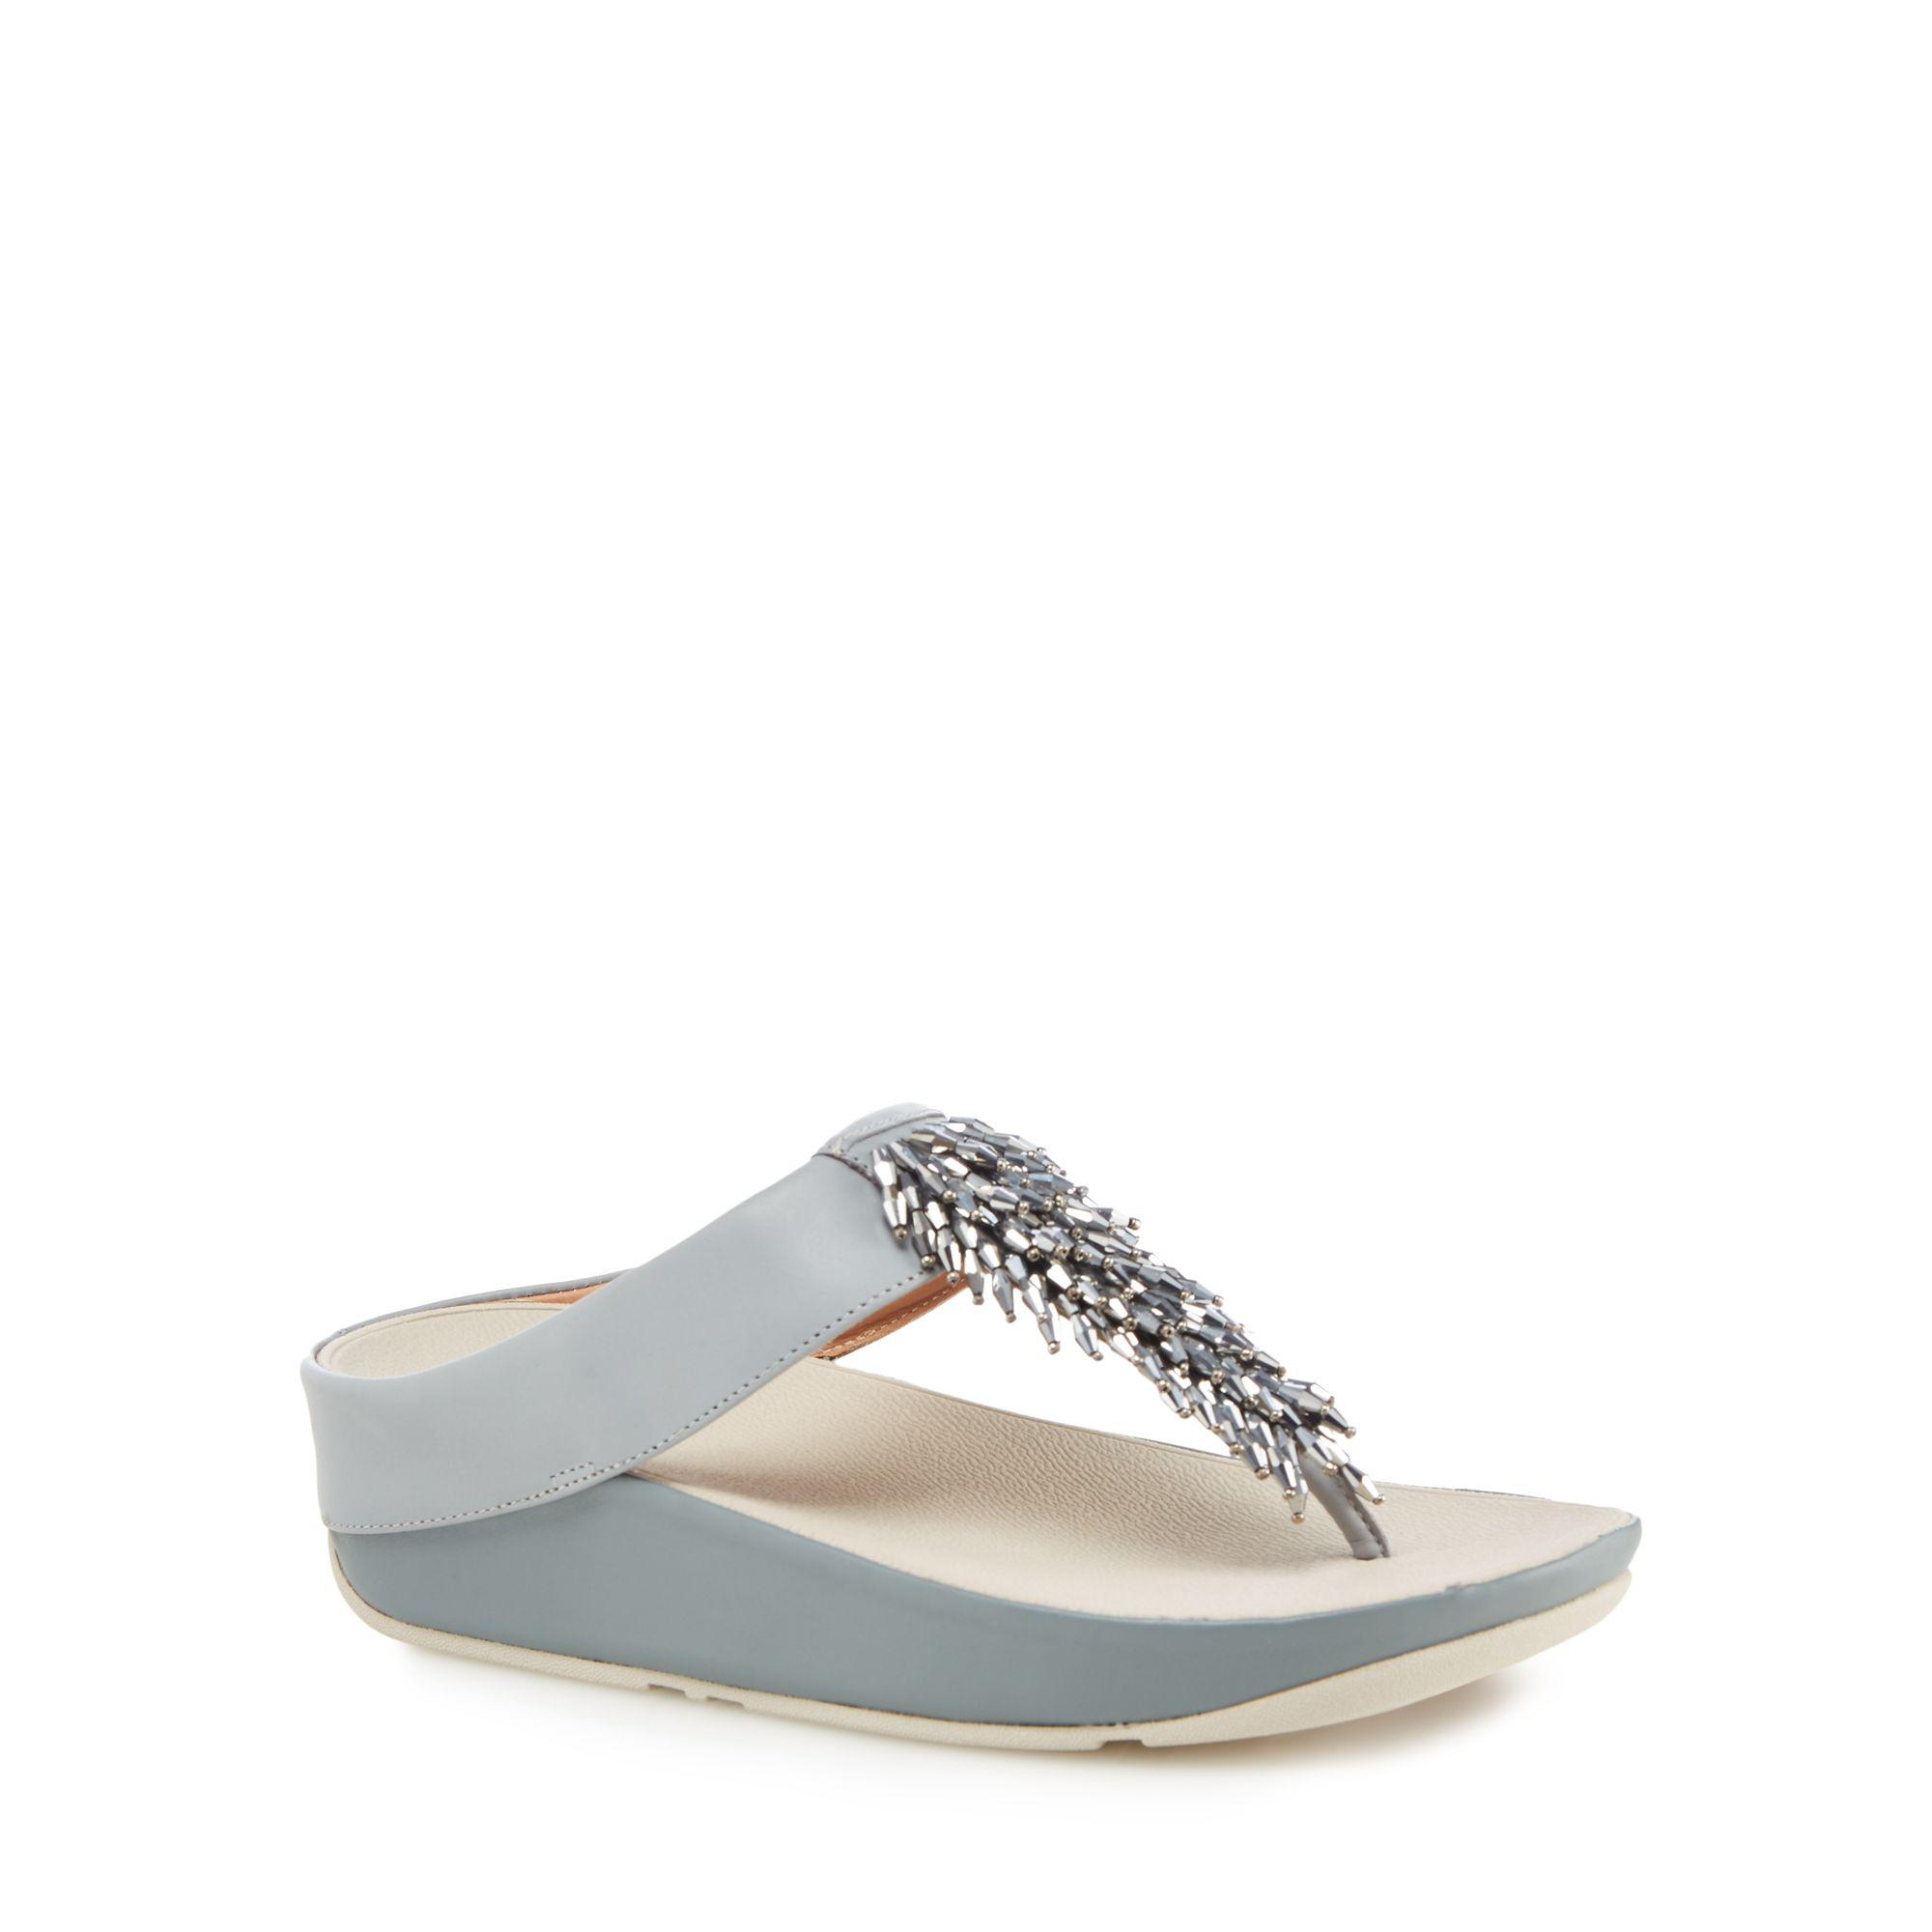 top quality cheap price Grey glitter 'Glitterball' mid flatform heel flip flops cheap authentic outlet 0UFPfrW74T